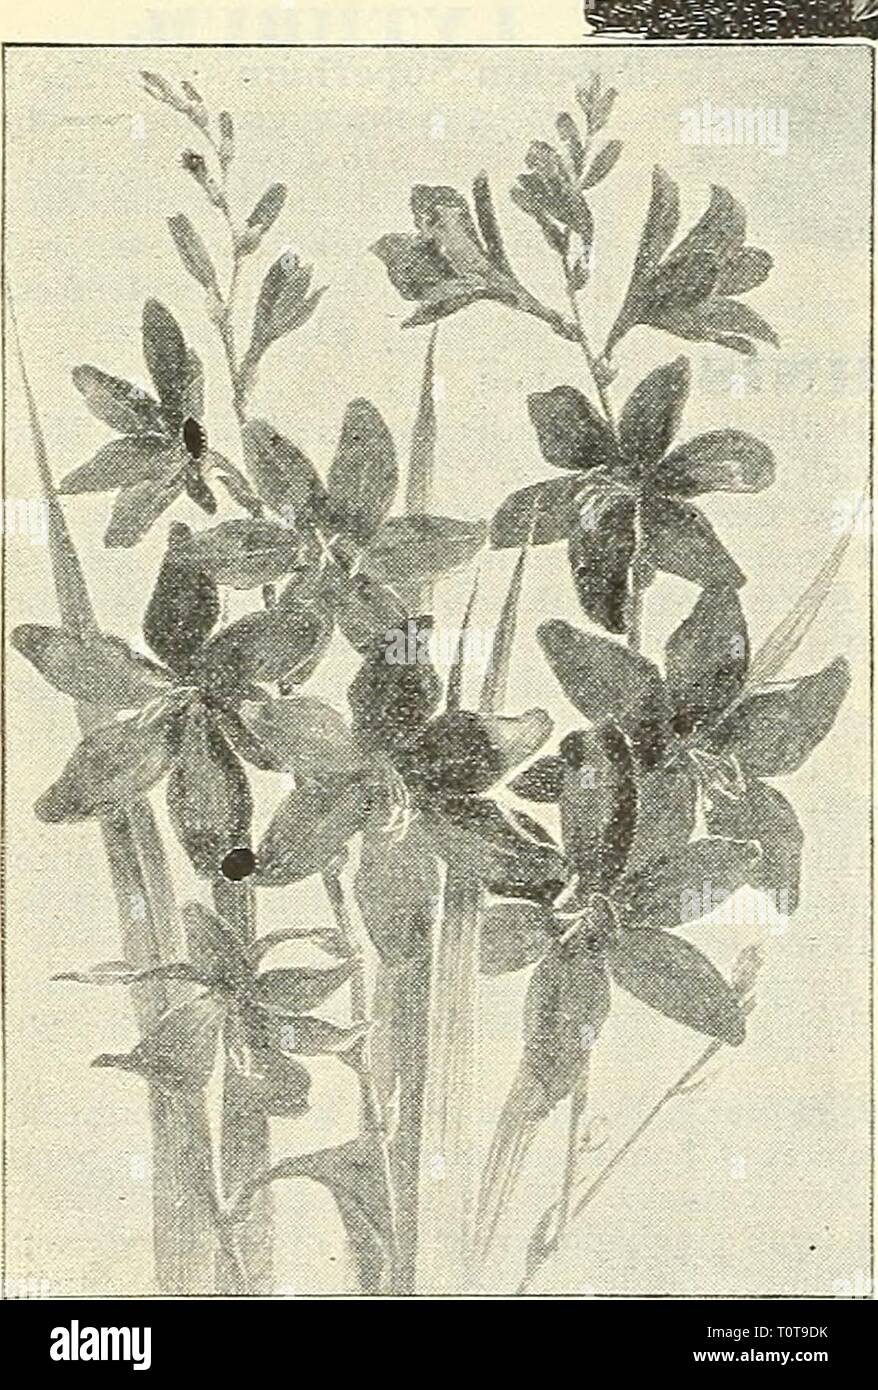 Dreer's garden book  1904 Dreer's garden book : 1904  dreersgardenbook1904henr Year: 1904  MEJ^THA Peppermint,. Piperita. The common Peppermint. 10 els. each ; §1.00 per cloz. — Variegata. A pretty variegated form; bright green foliage, bordered wilh white. 10 cts. each ; §1.00 per doz. MERTENSIA (Blue Bells). Virginica. An e^irly spring-fiouering plant, growing about 1 to 1 ^ feet high, wilh drooping panicles of handsome light blue flowers, fading to clear pink ; one of the most interesting of our native spring flowers ; May and June. 15 cts. each; SI.50 per doz. MEUM. Athamanticum. An intere - Stock Image